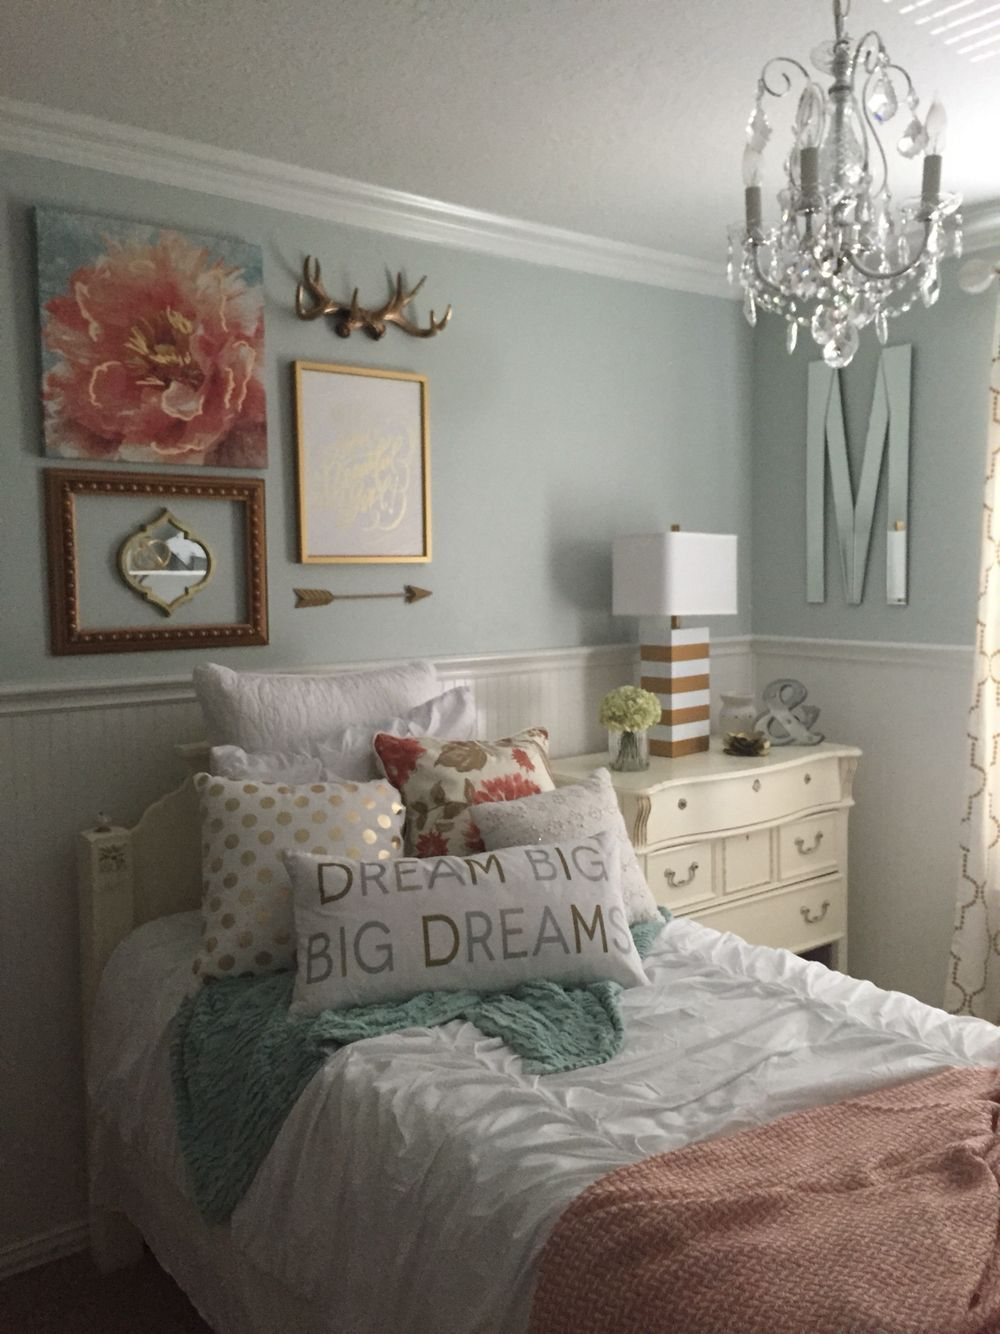 Gi Room Design: 27 Fabulous Girls Bedroom Ideas To Realize Their Dreamy